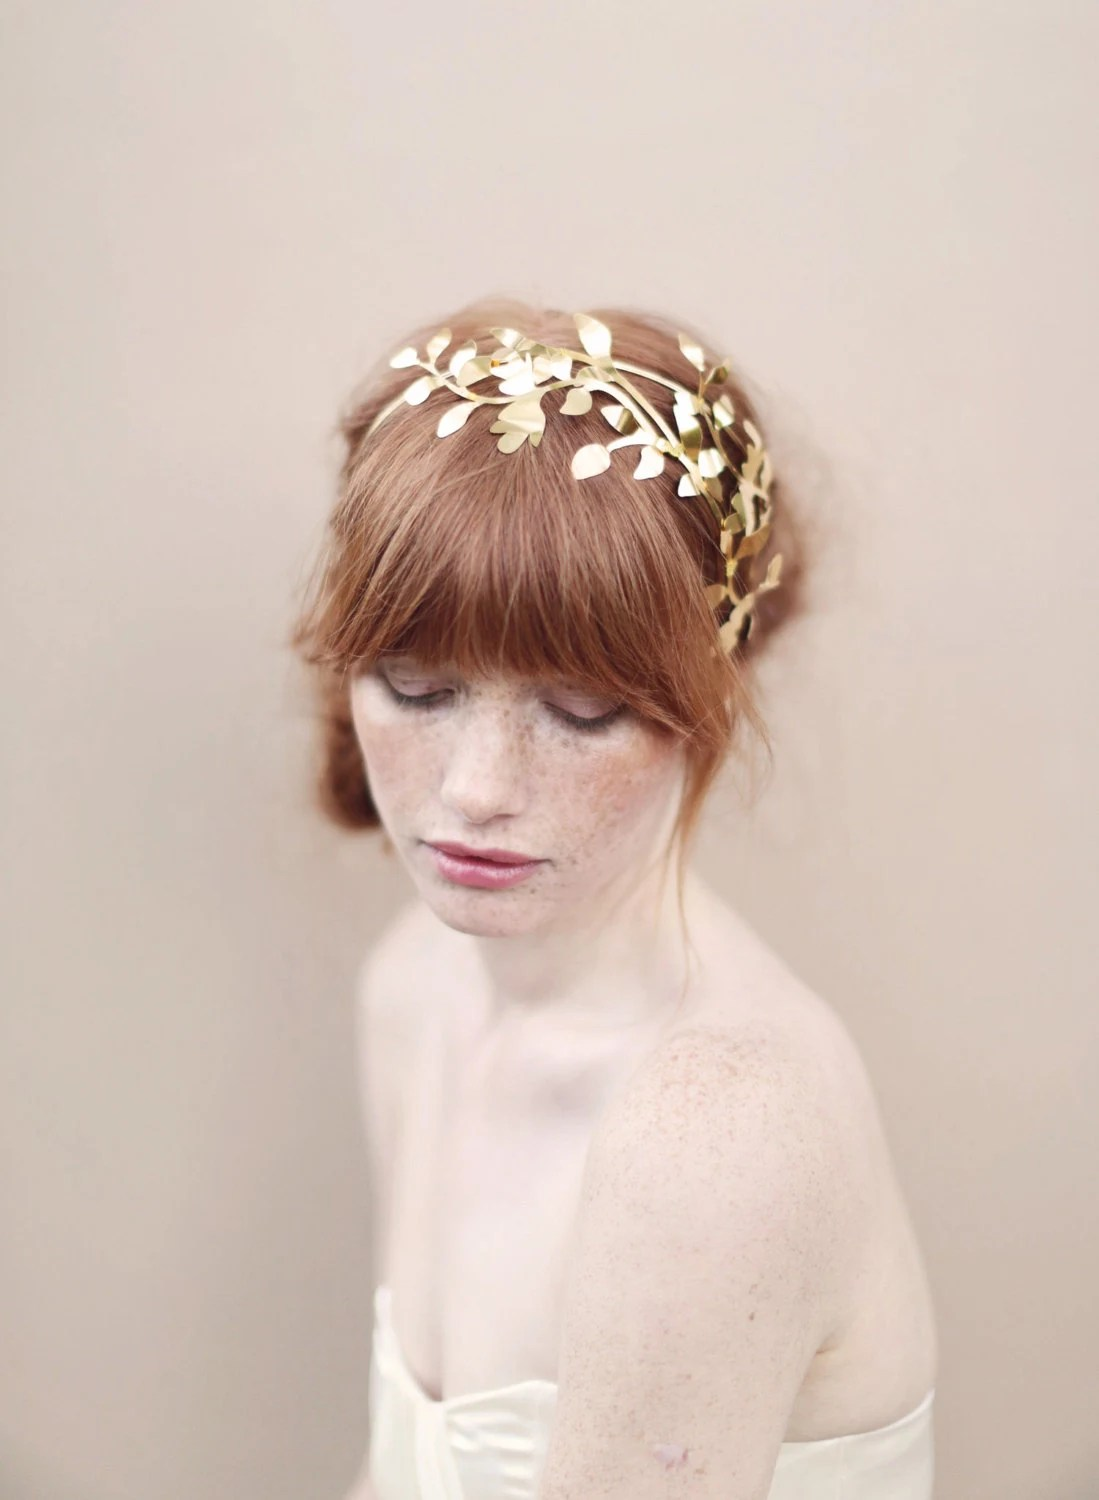 Bridal headband, fern leaves, headpiece - Woodland fern gilded headband - Style 353